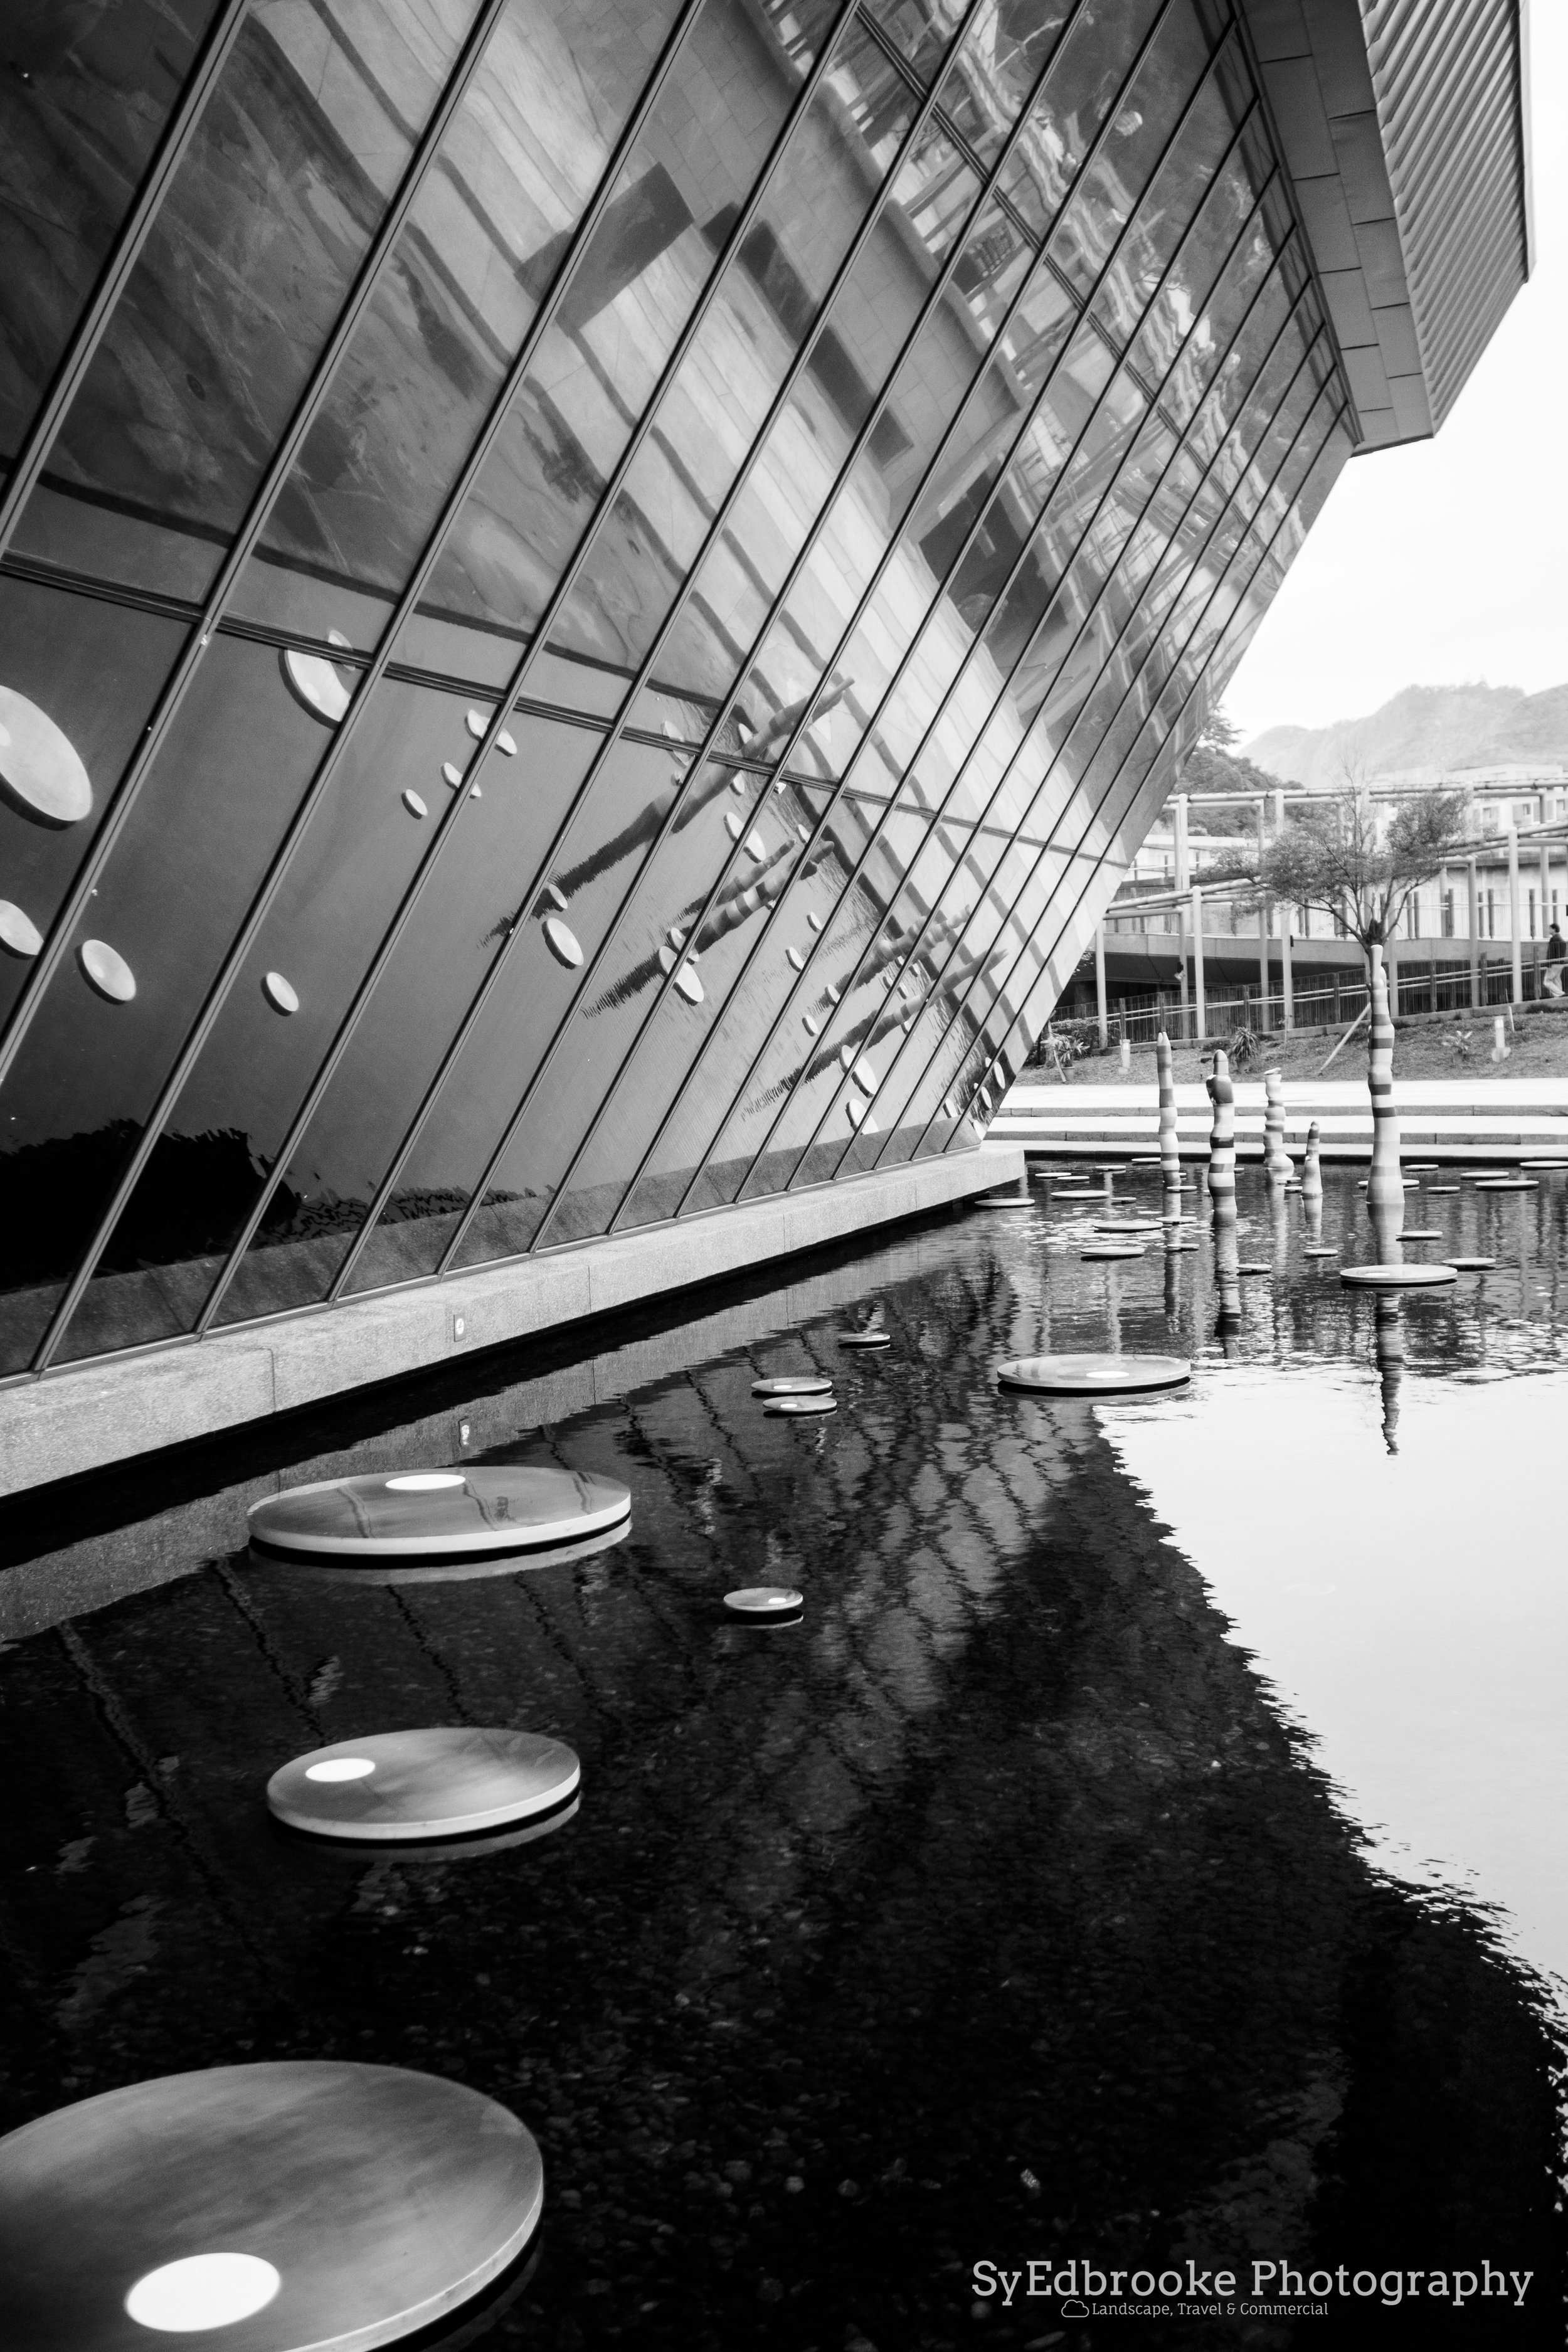 The maritime museum close to Keelung. f1.8, ISO 200, 1/200, 35mm